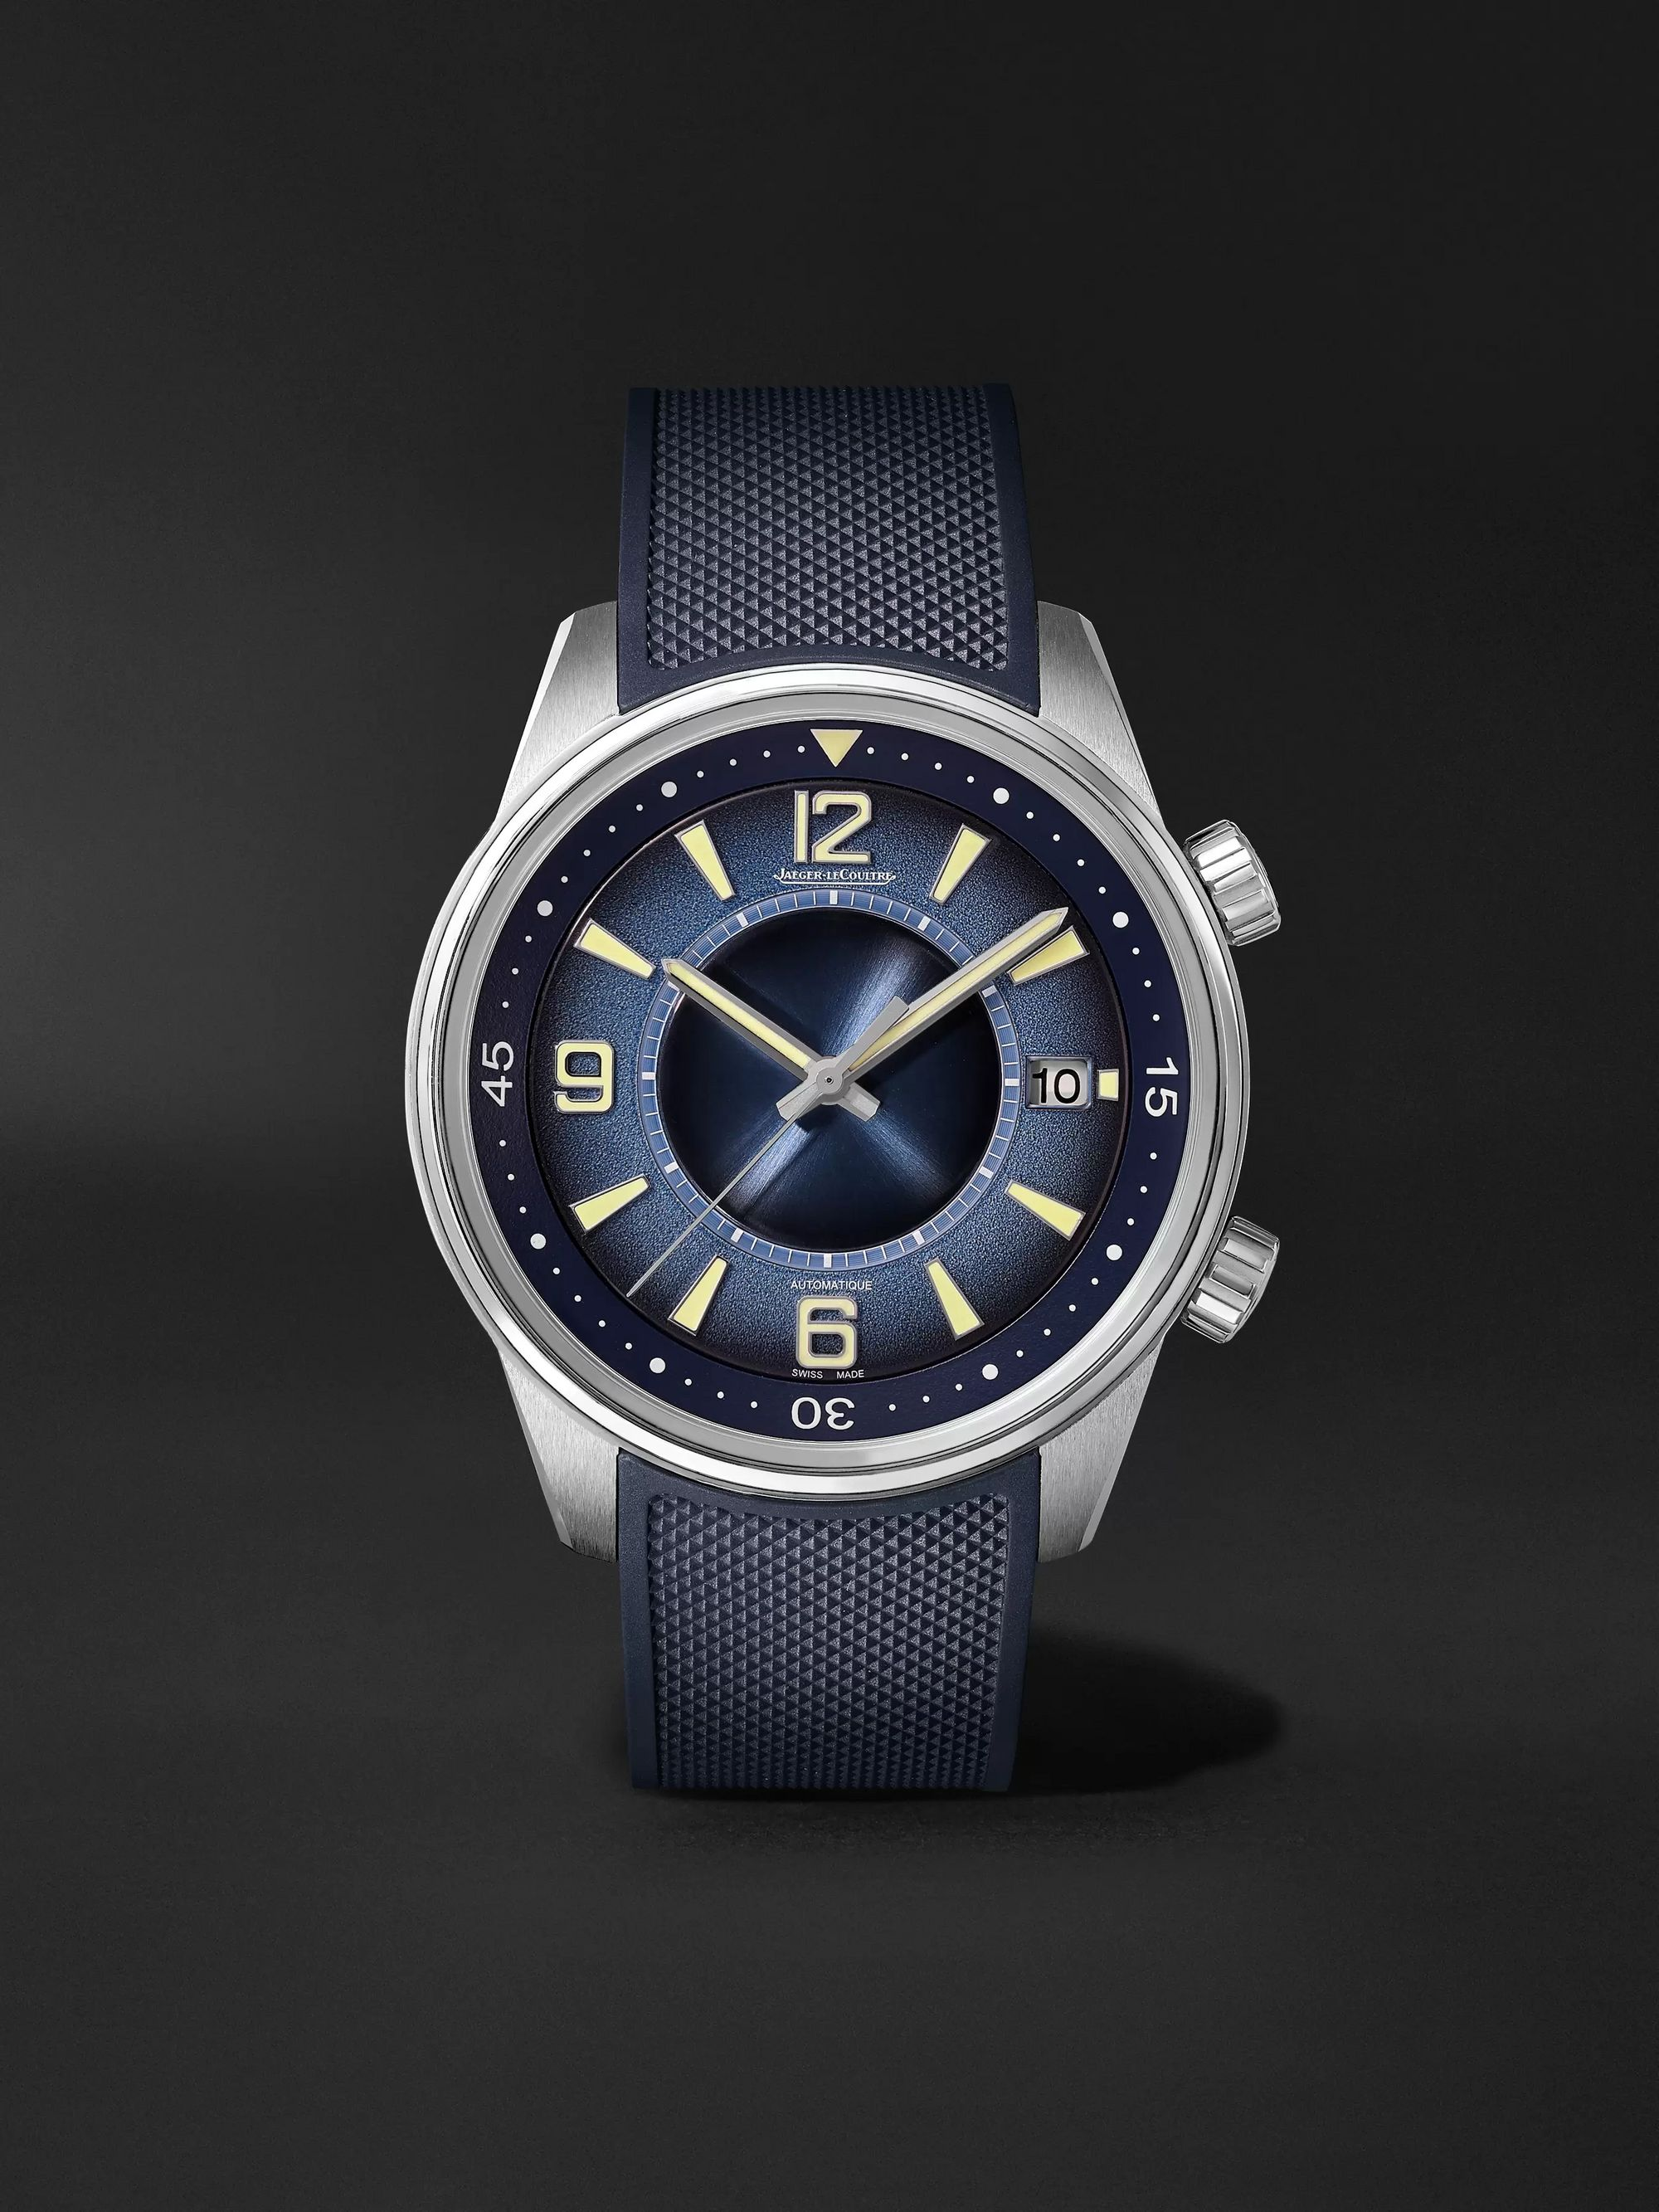 Jaeger-LeCoultre Polaris Date Limited Edition Automatic 42mm Stainless Steel and Rubber Watch, Ref. No. Q9068681